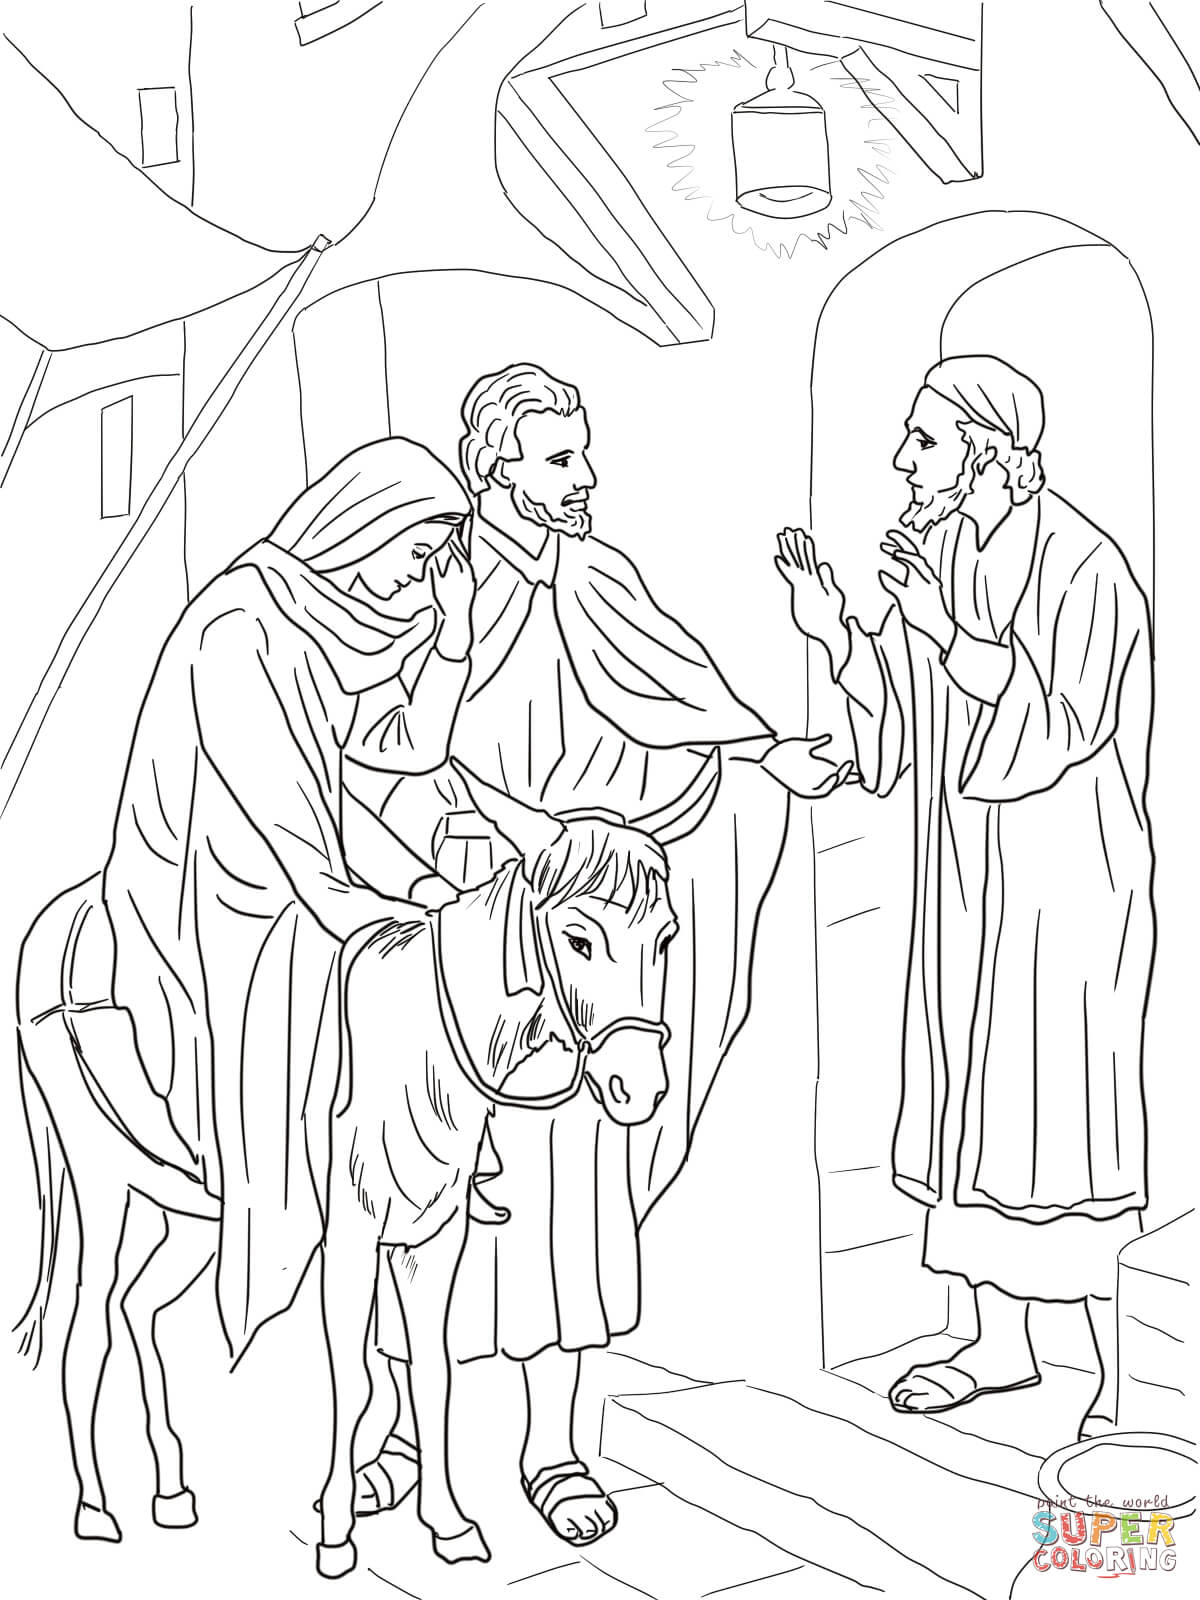 Joseph Coloring Pages Pdf : No room at the inn for mary and joseph coloring page